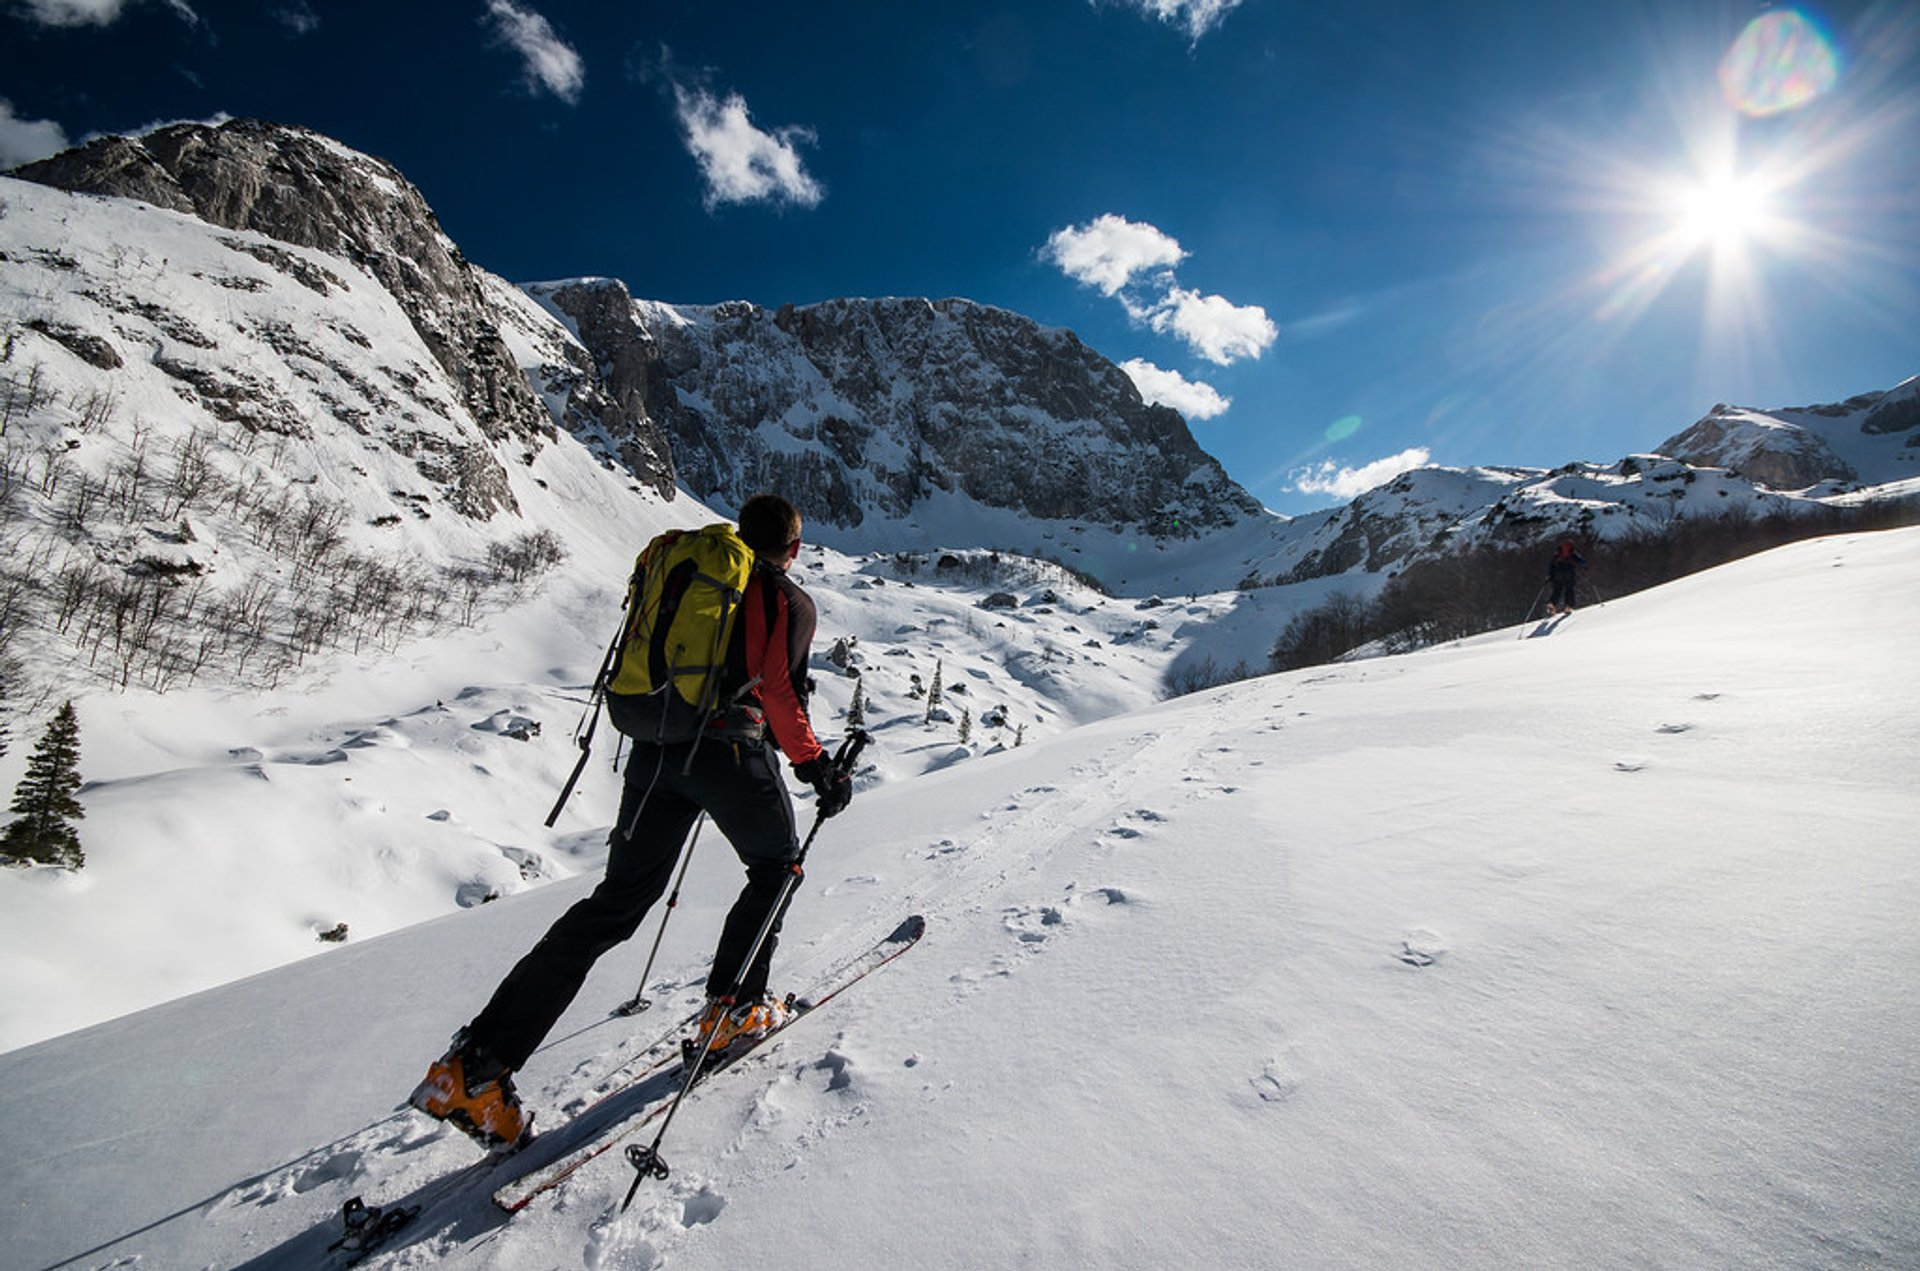 Skiing and Snowboarding in Montenegro 2020 - Best Time